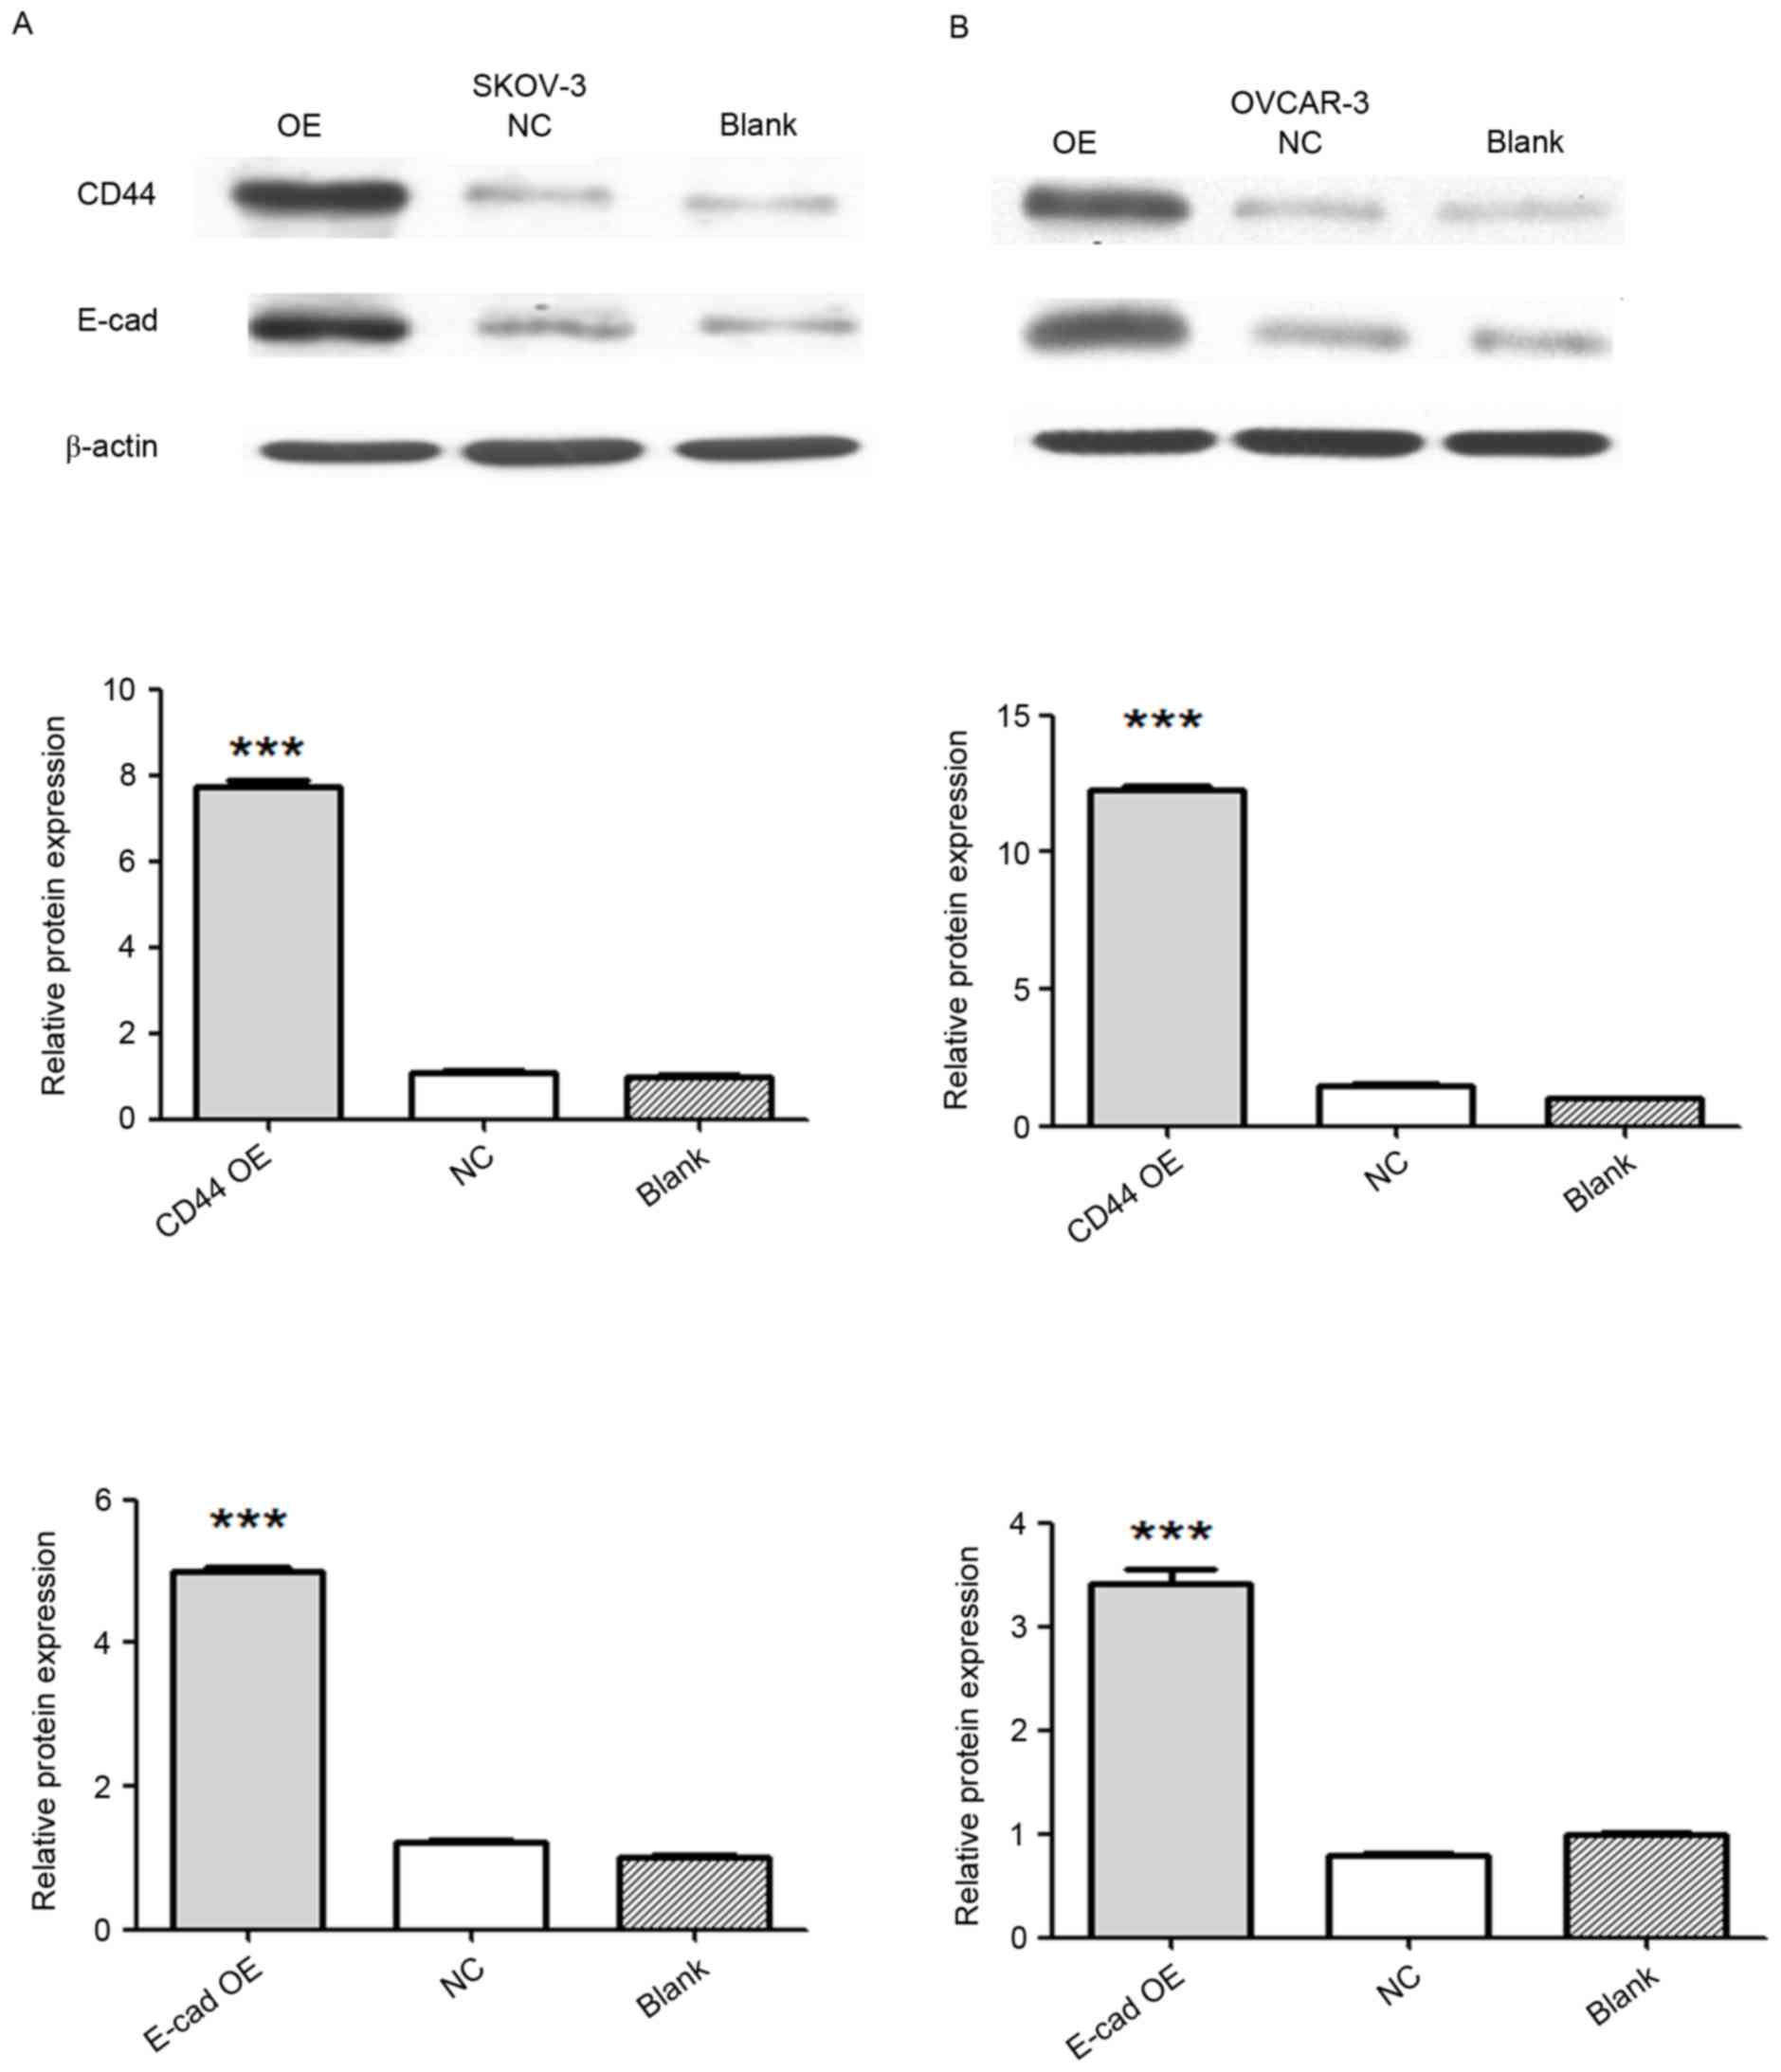 Effects Of Cd44 And E Cadherin Overexpression On The Proliferation Adhesion And Invasion Of Ovarian Cancer Cells